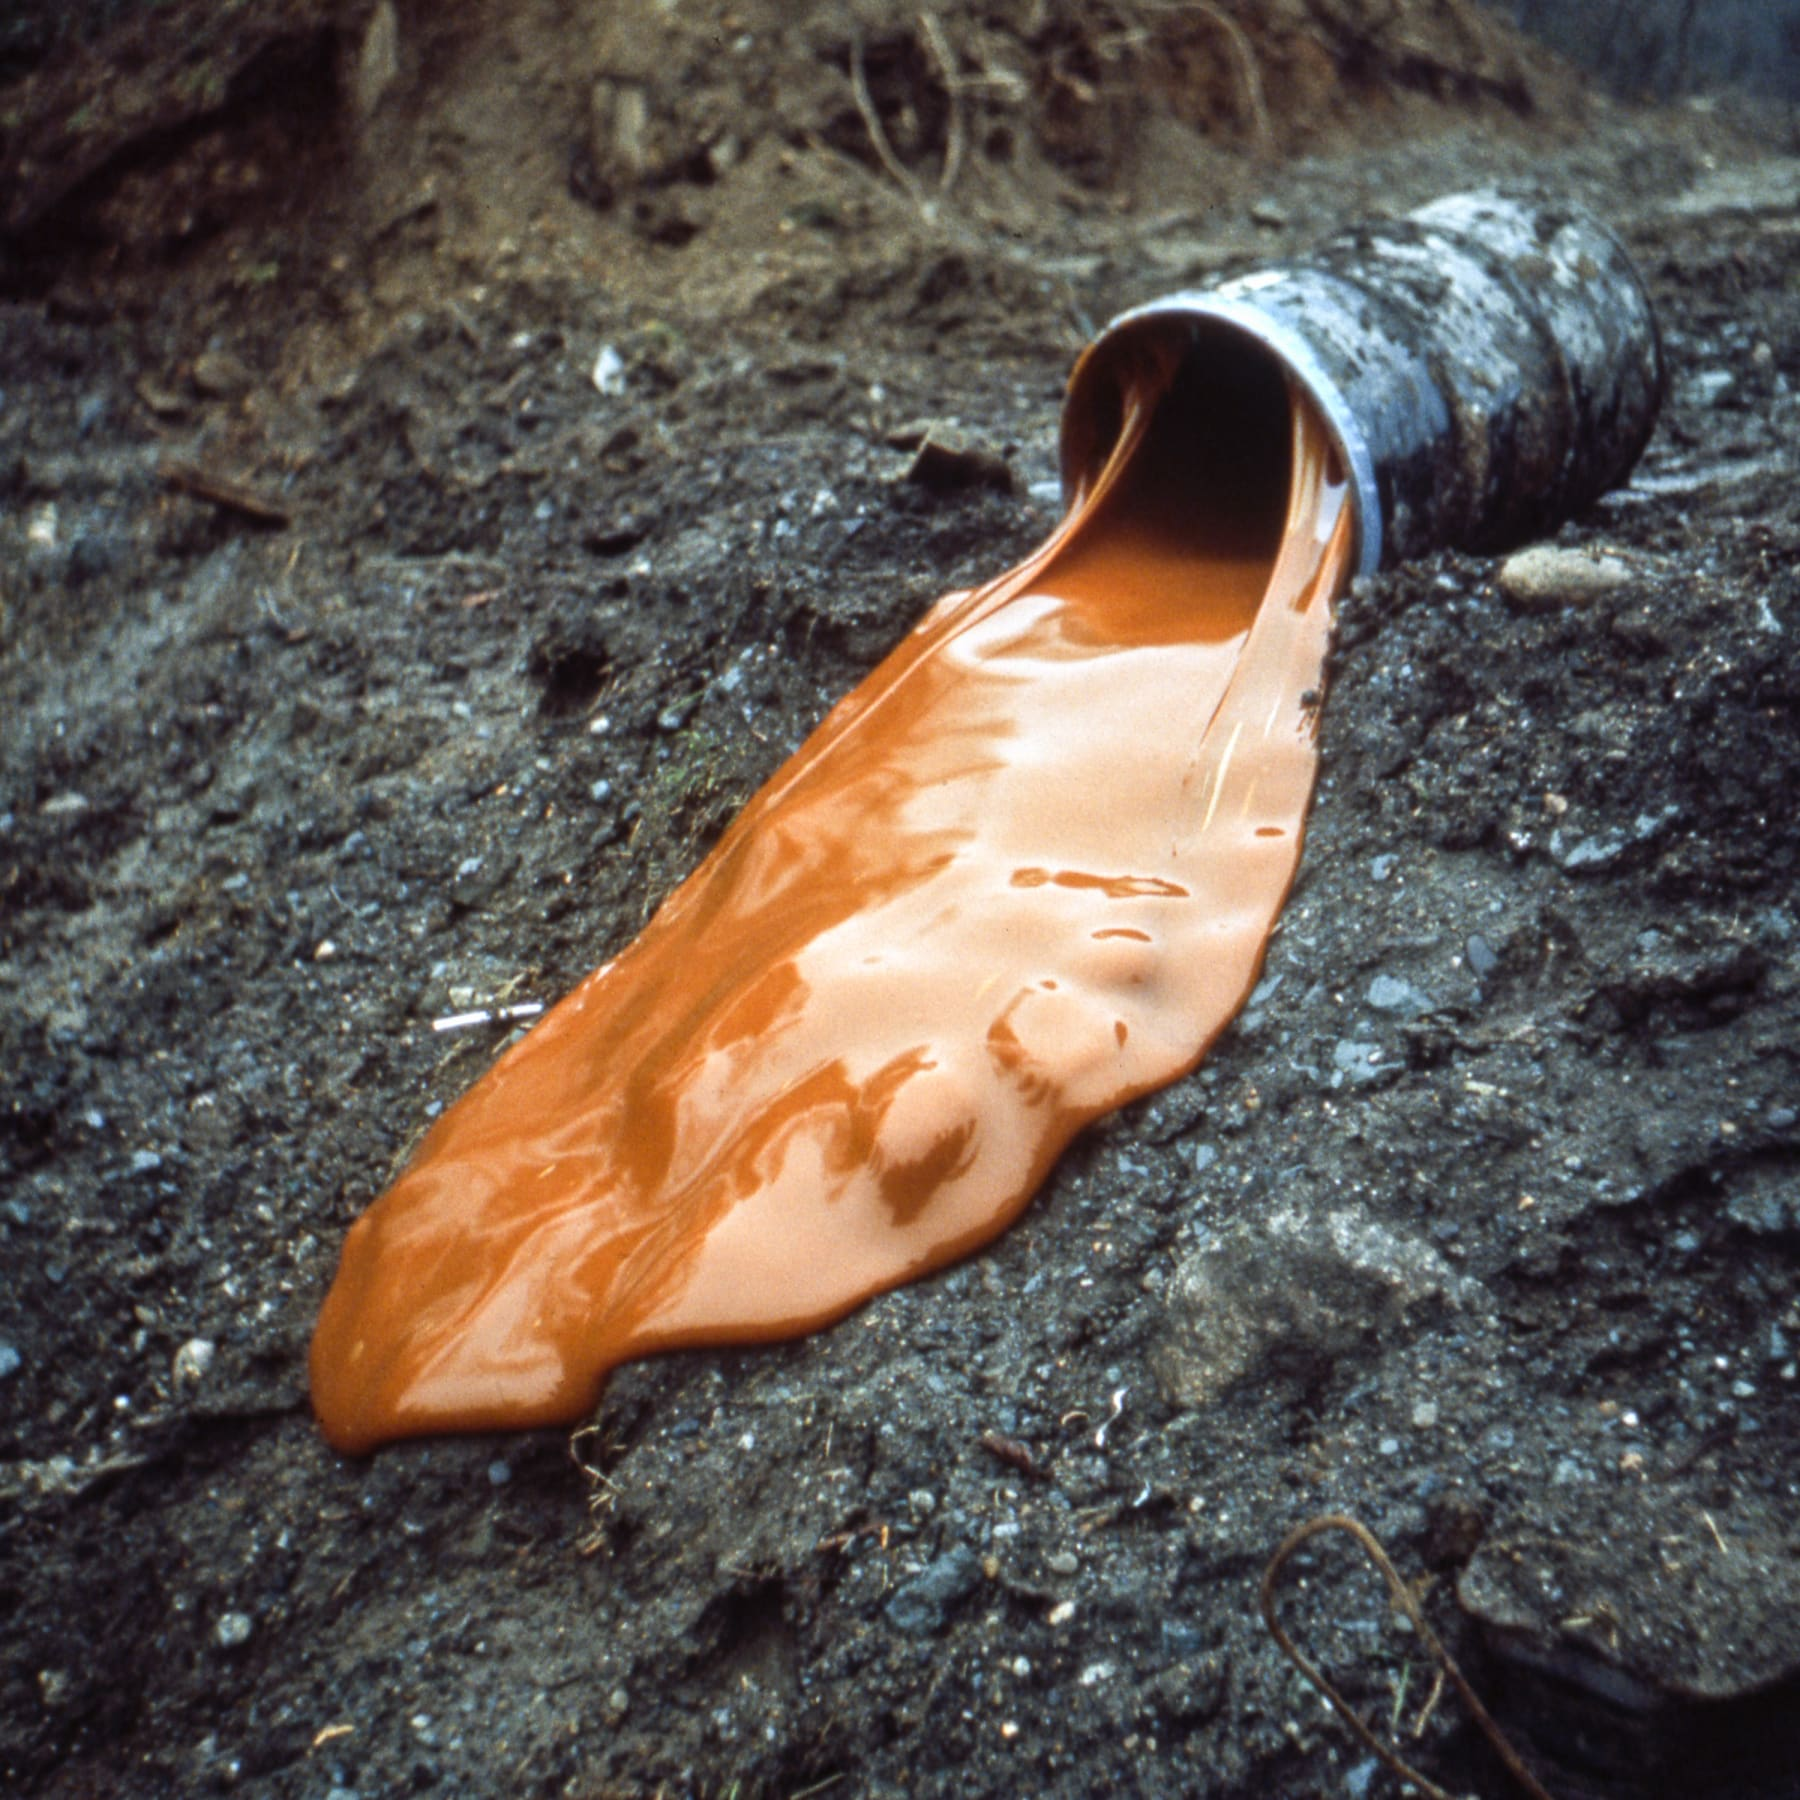 An image containing a large drum of glue at the crest of a hill and a tipped container. Earthwork by Robert Smithson